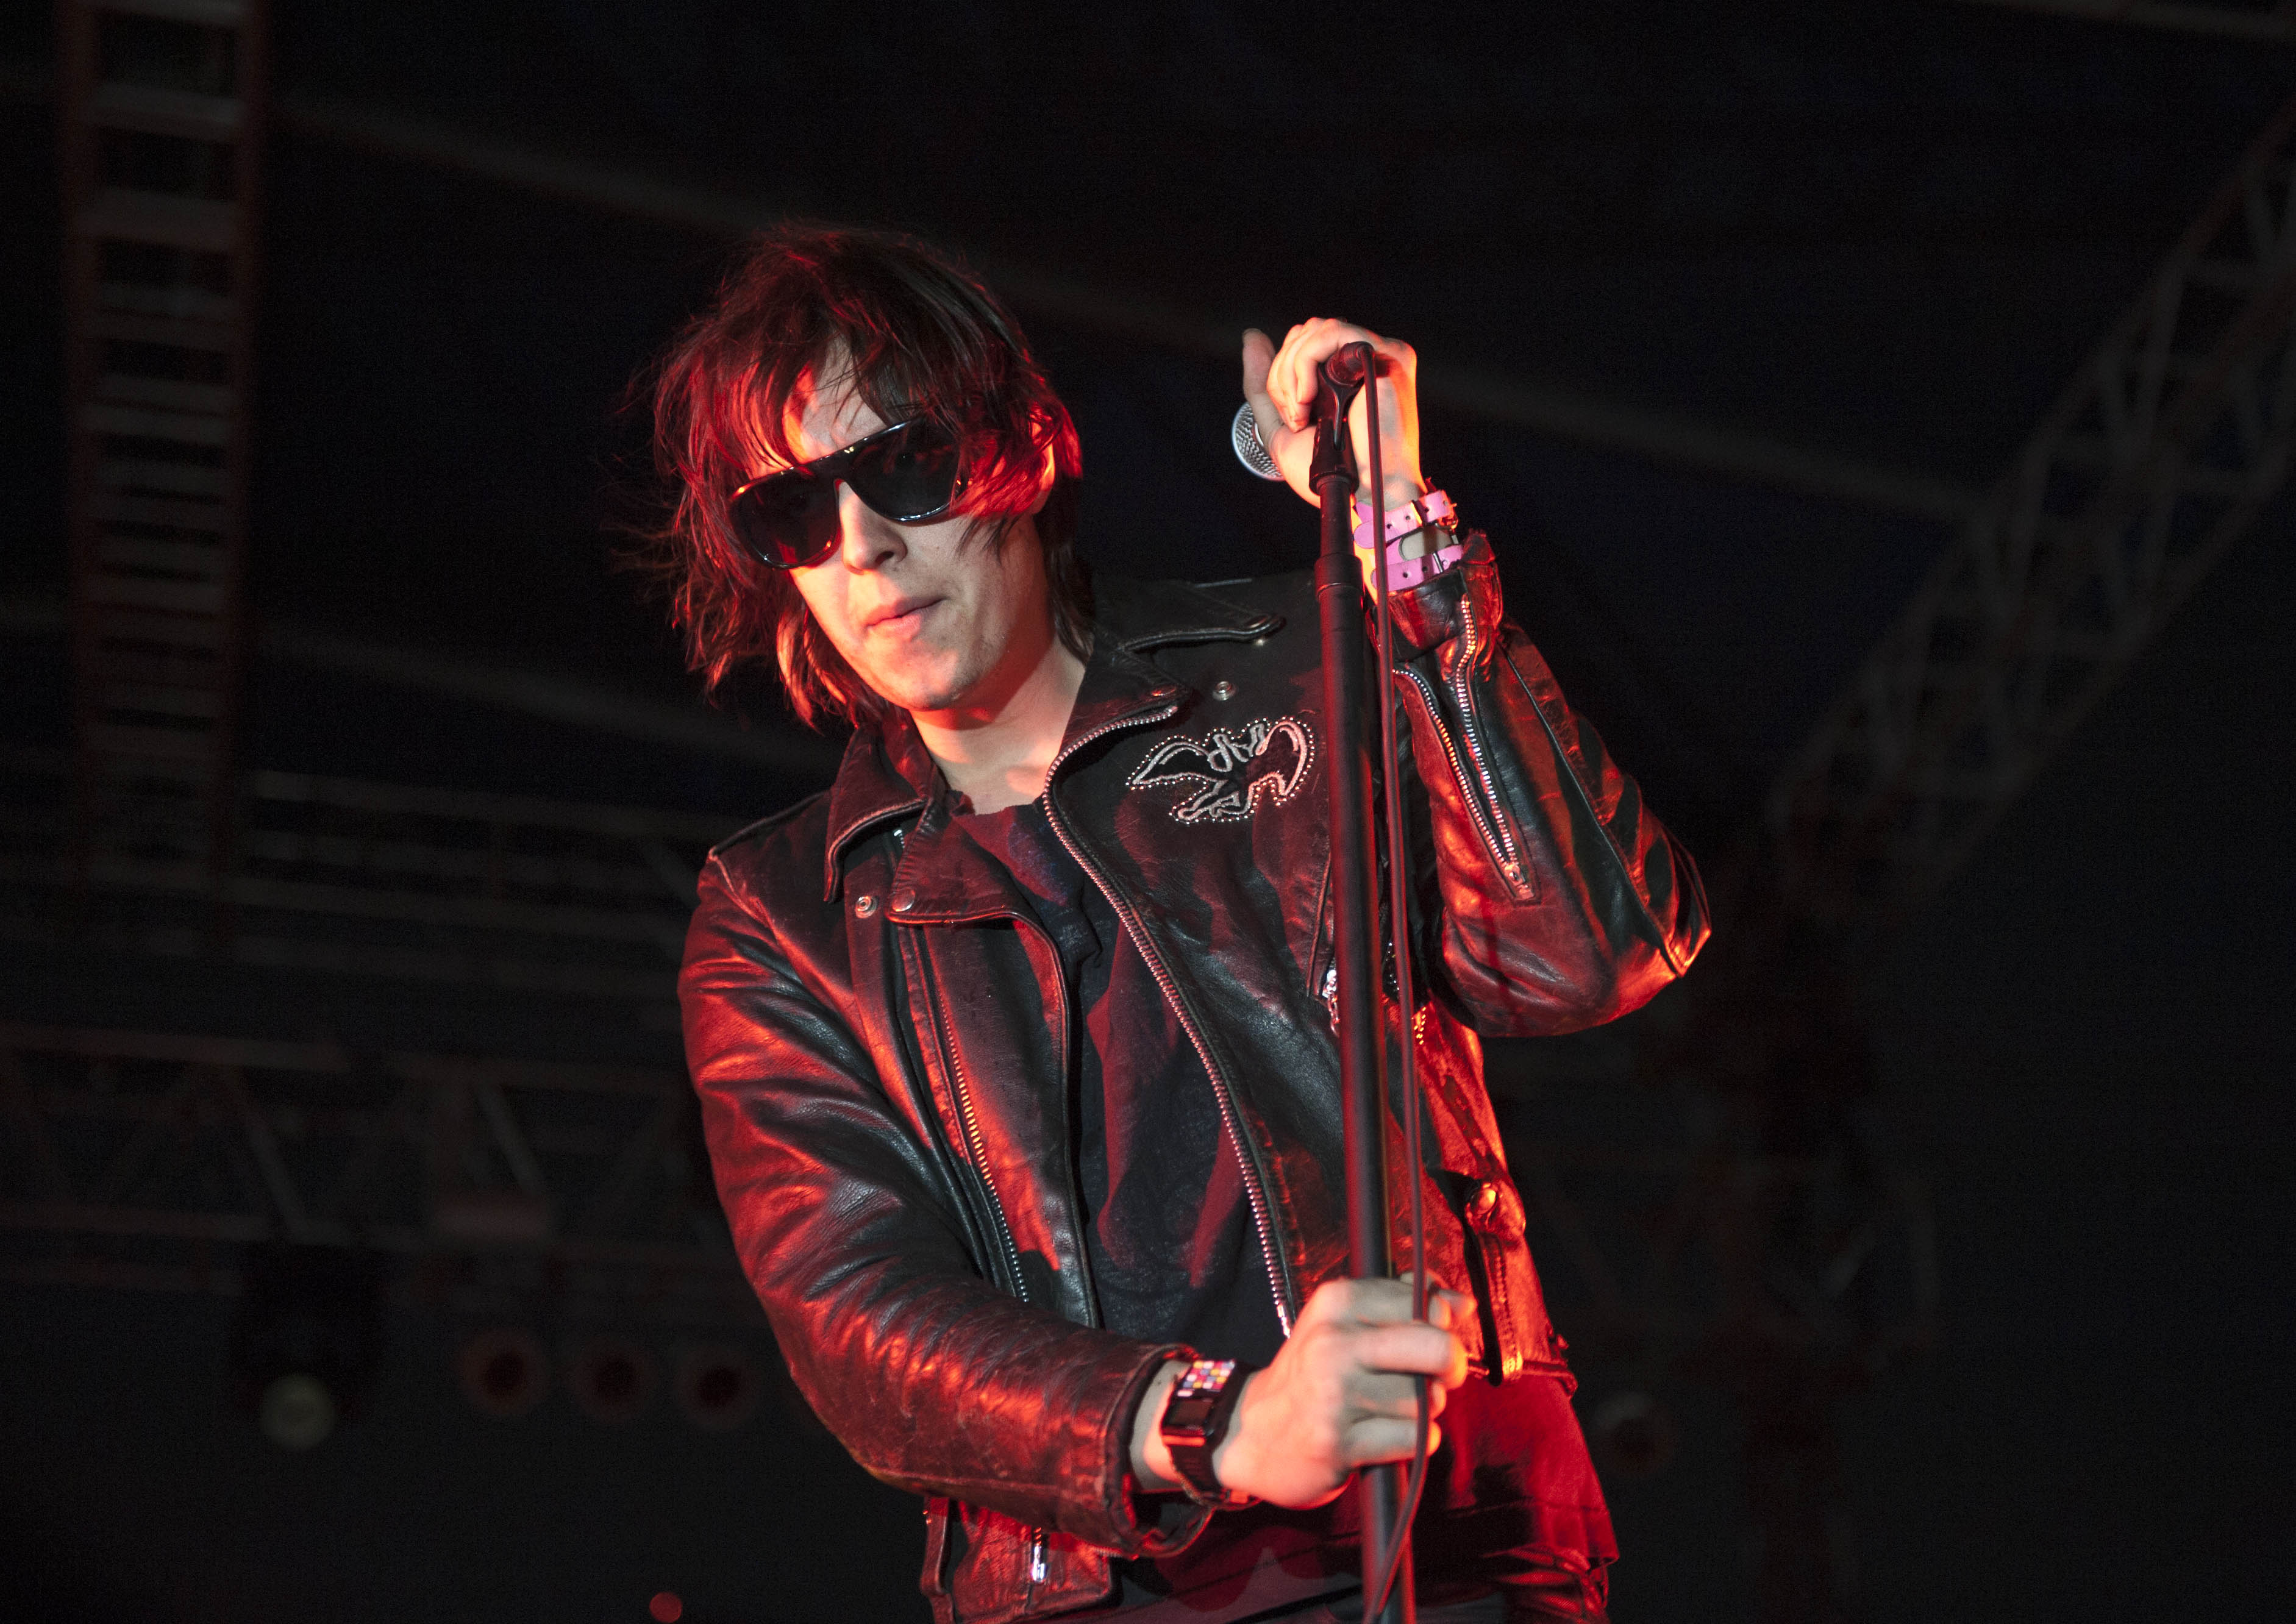 SXSW Photos: The Strokes and Wu Tang Clan